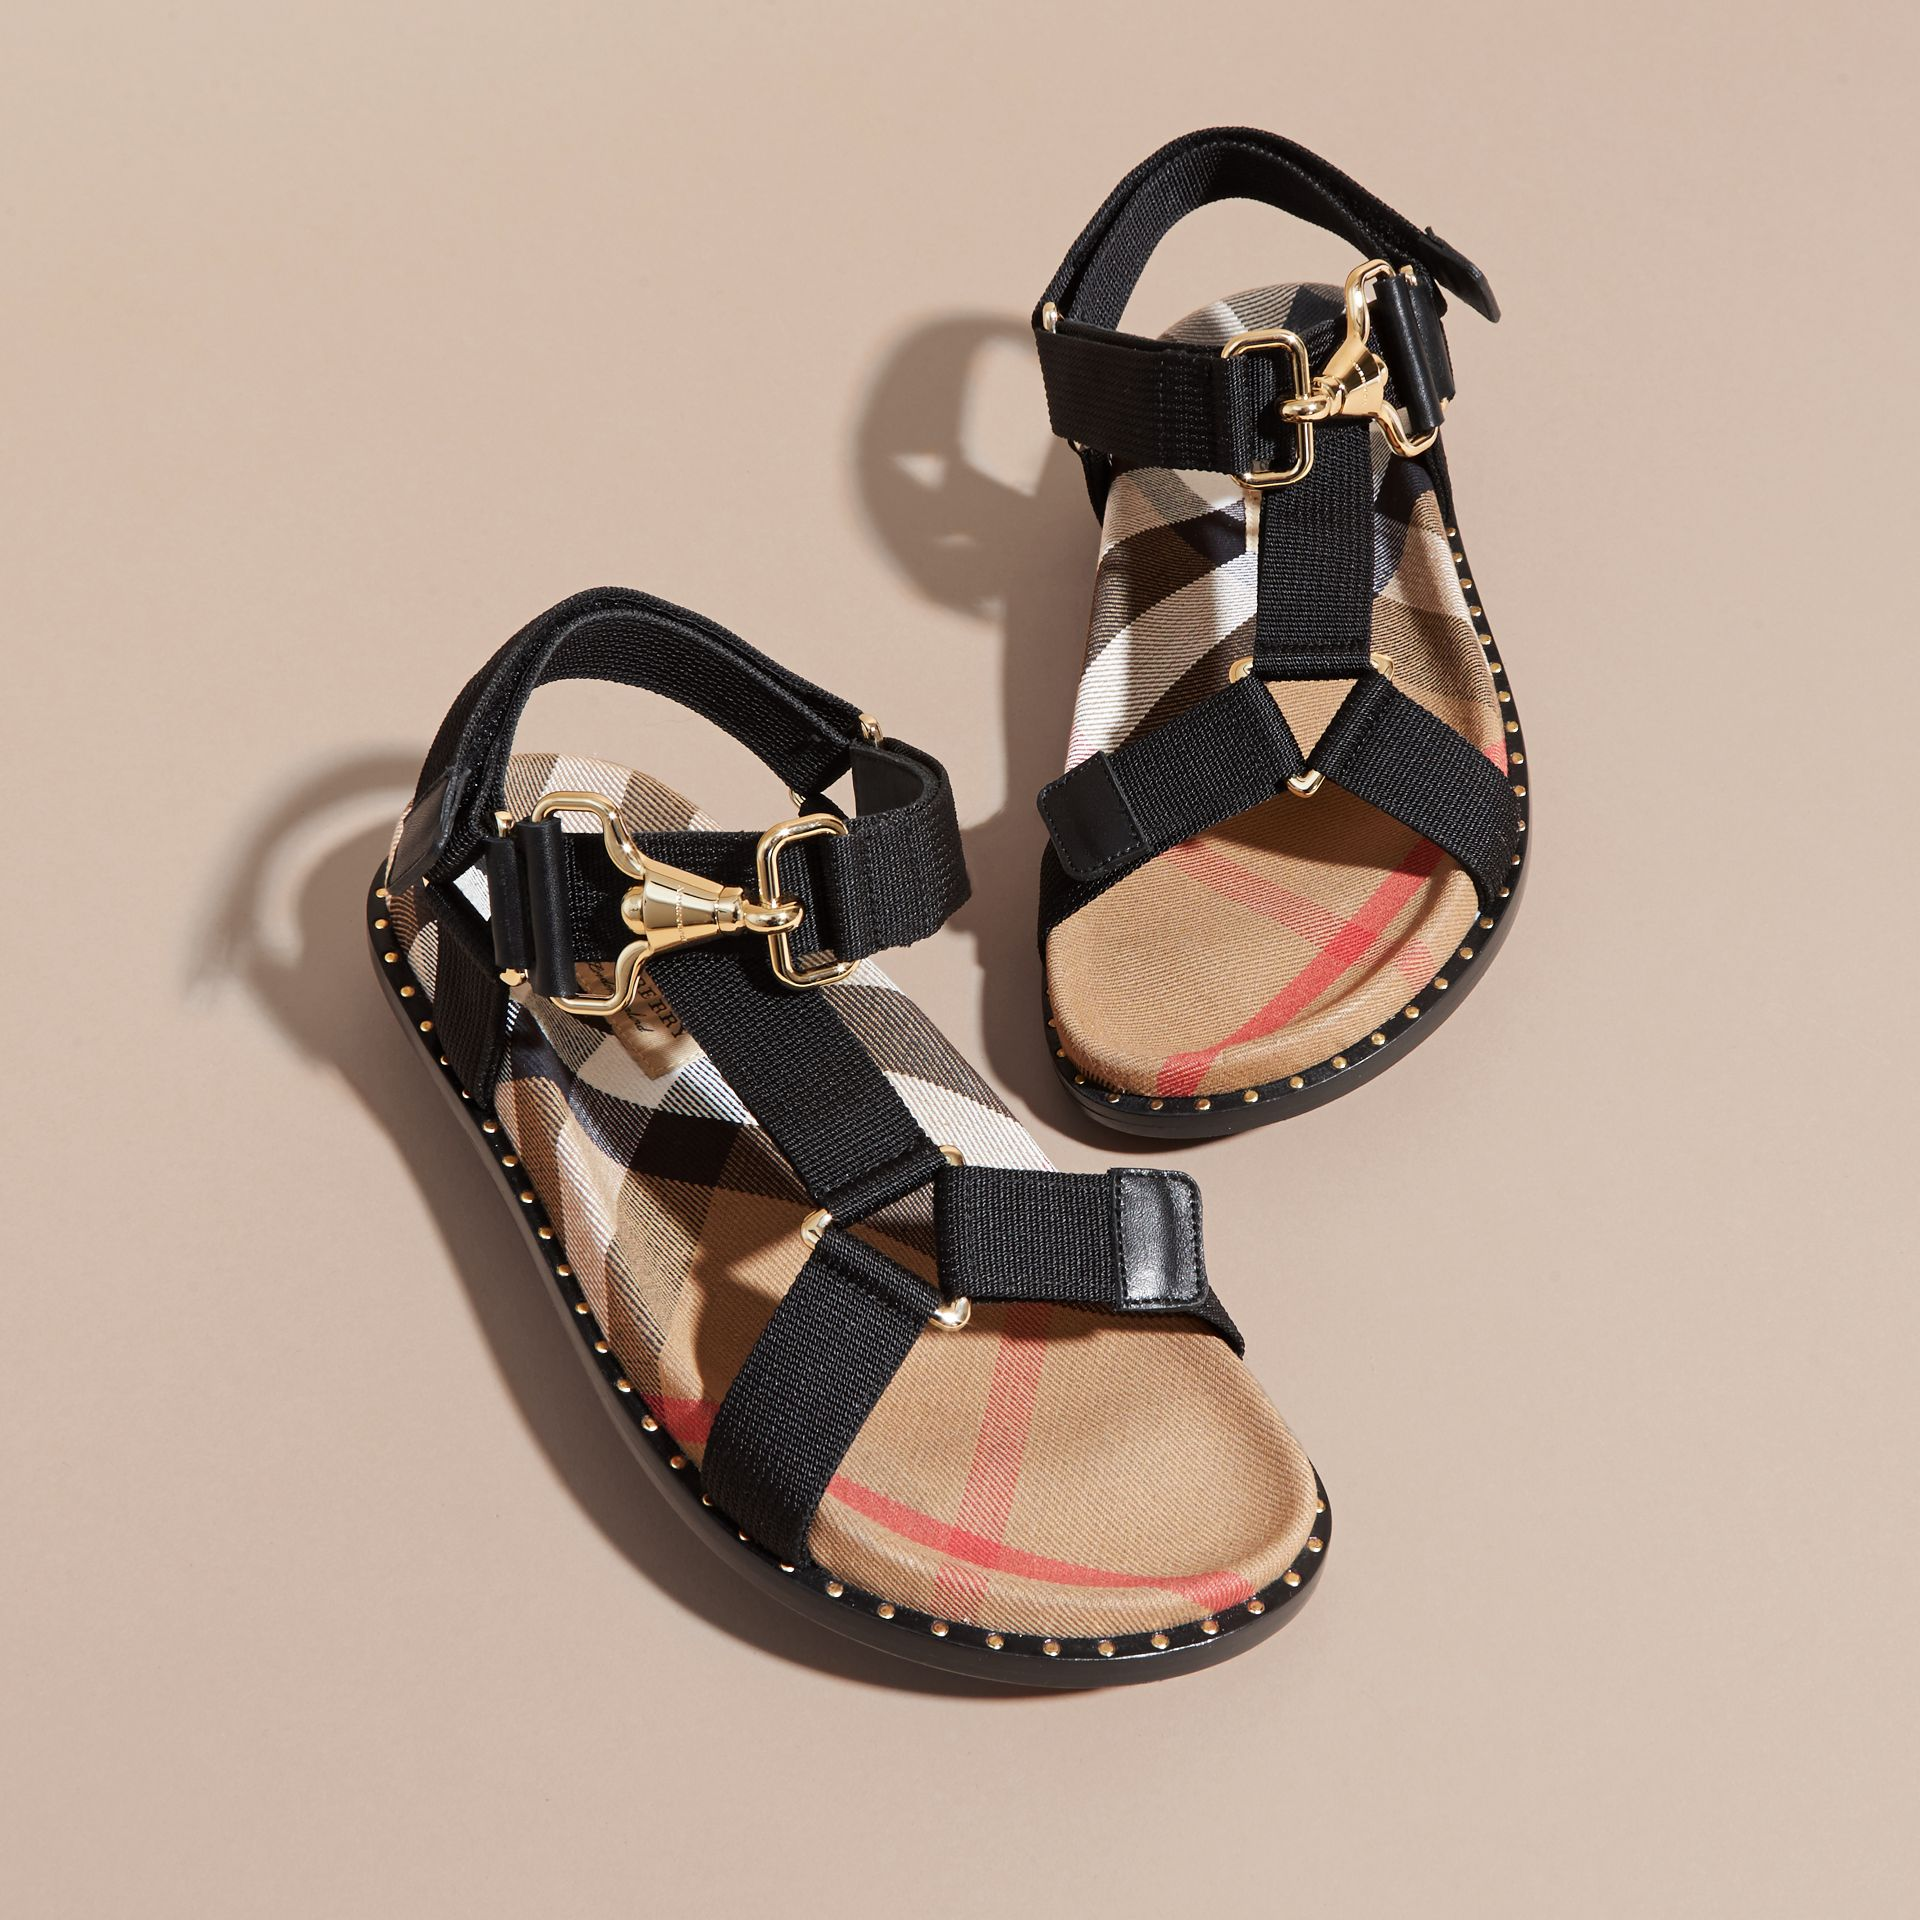 House Check Strappy Sandals with Hardware Detail in Black - Women | Burberry - gallery image 4